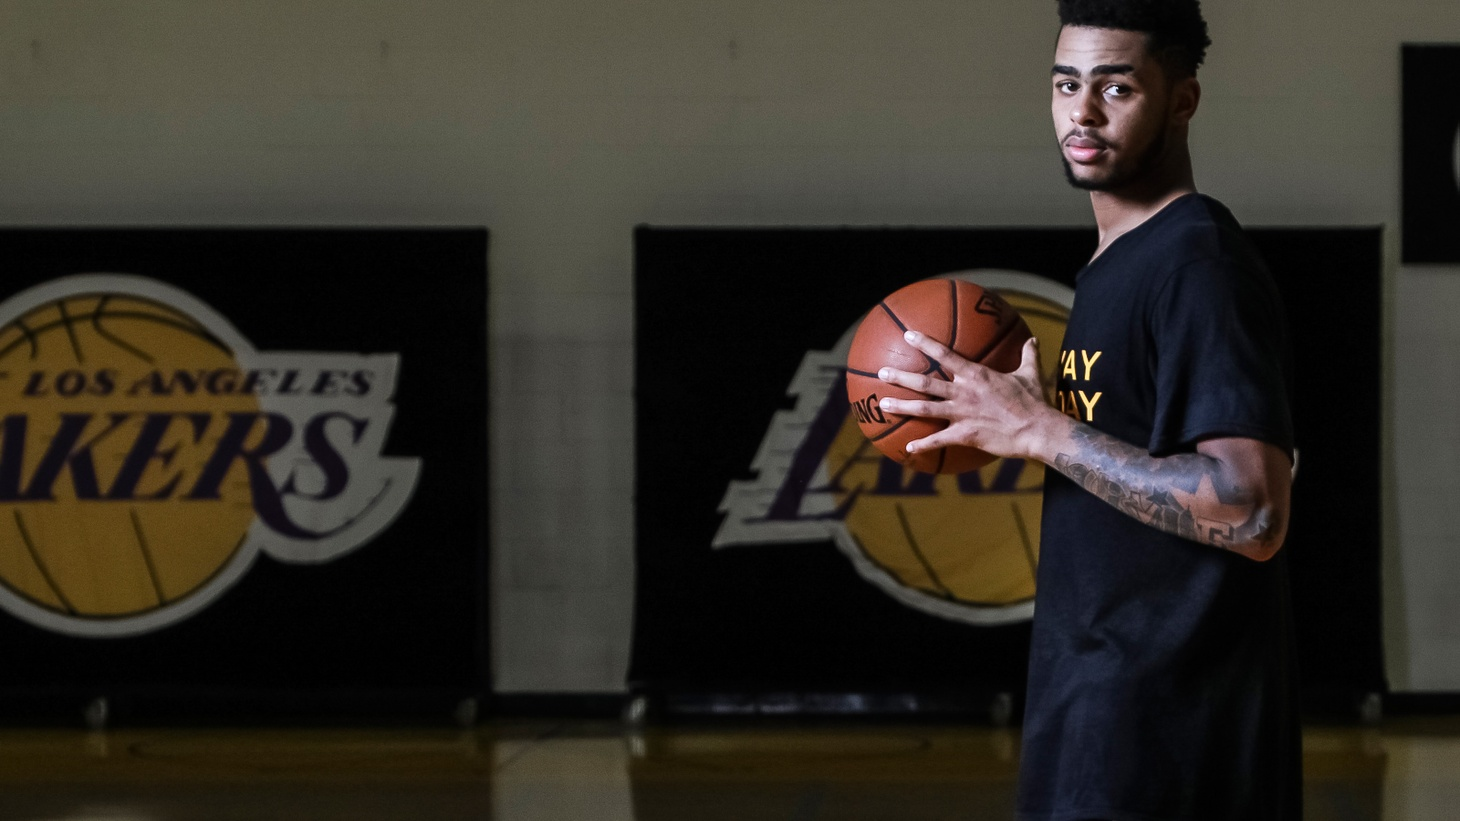 Lakers point guard D'Angelo Russell is one of the most promising players in the current lineup. We visited the Lakers' practice facility to find out his favorite songs.